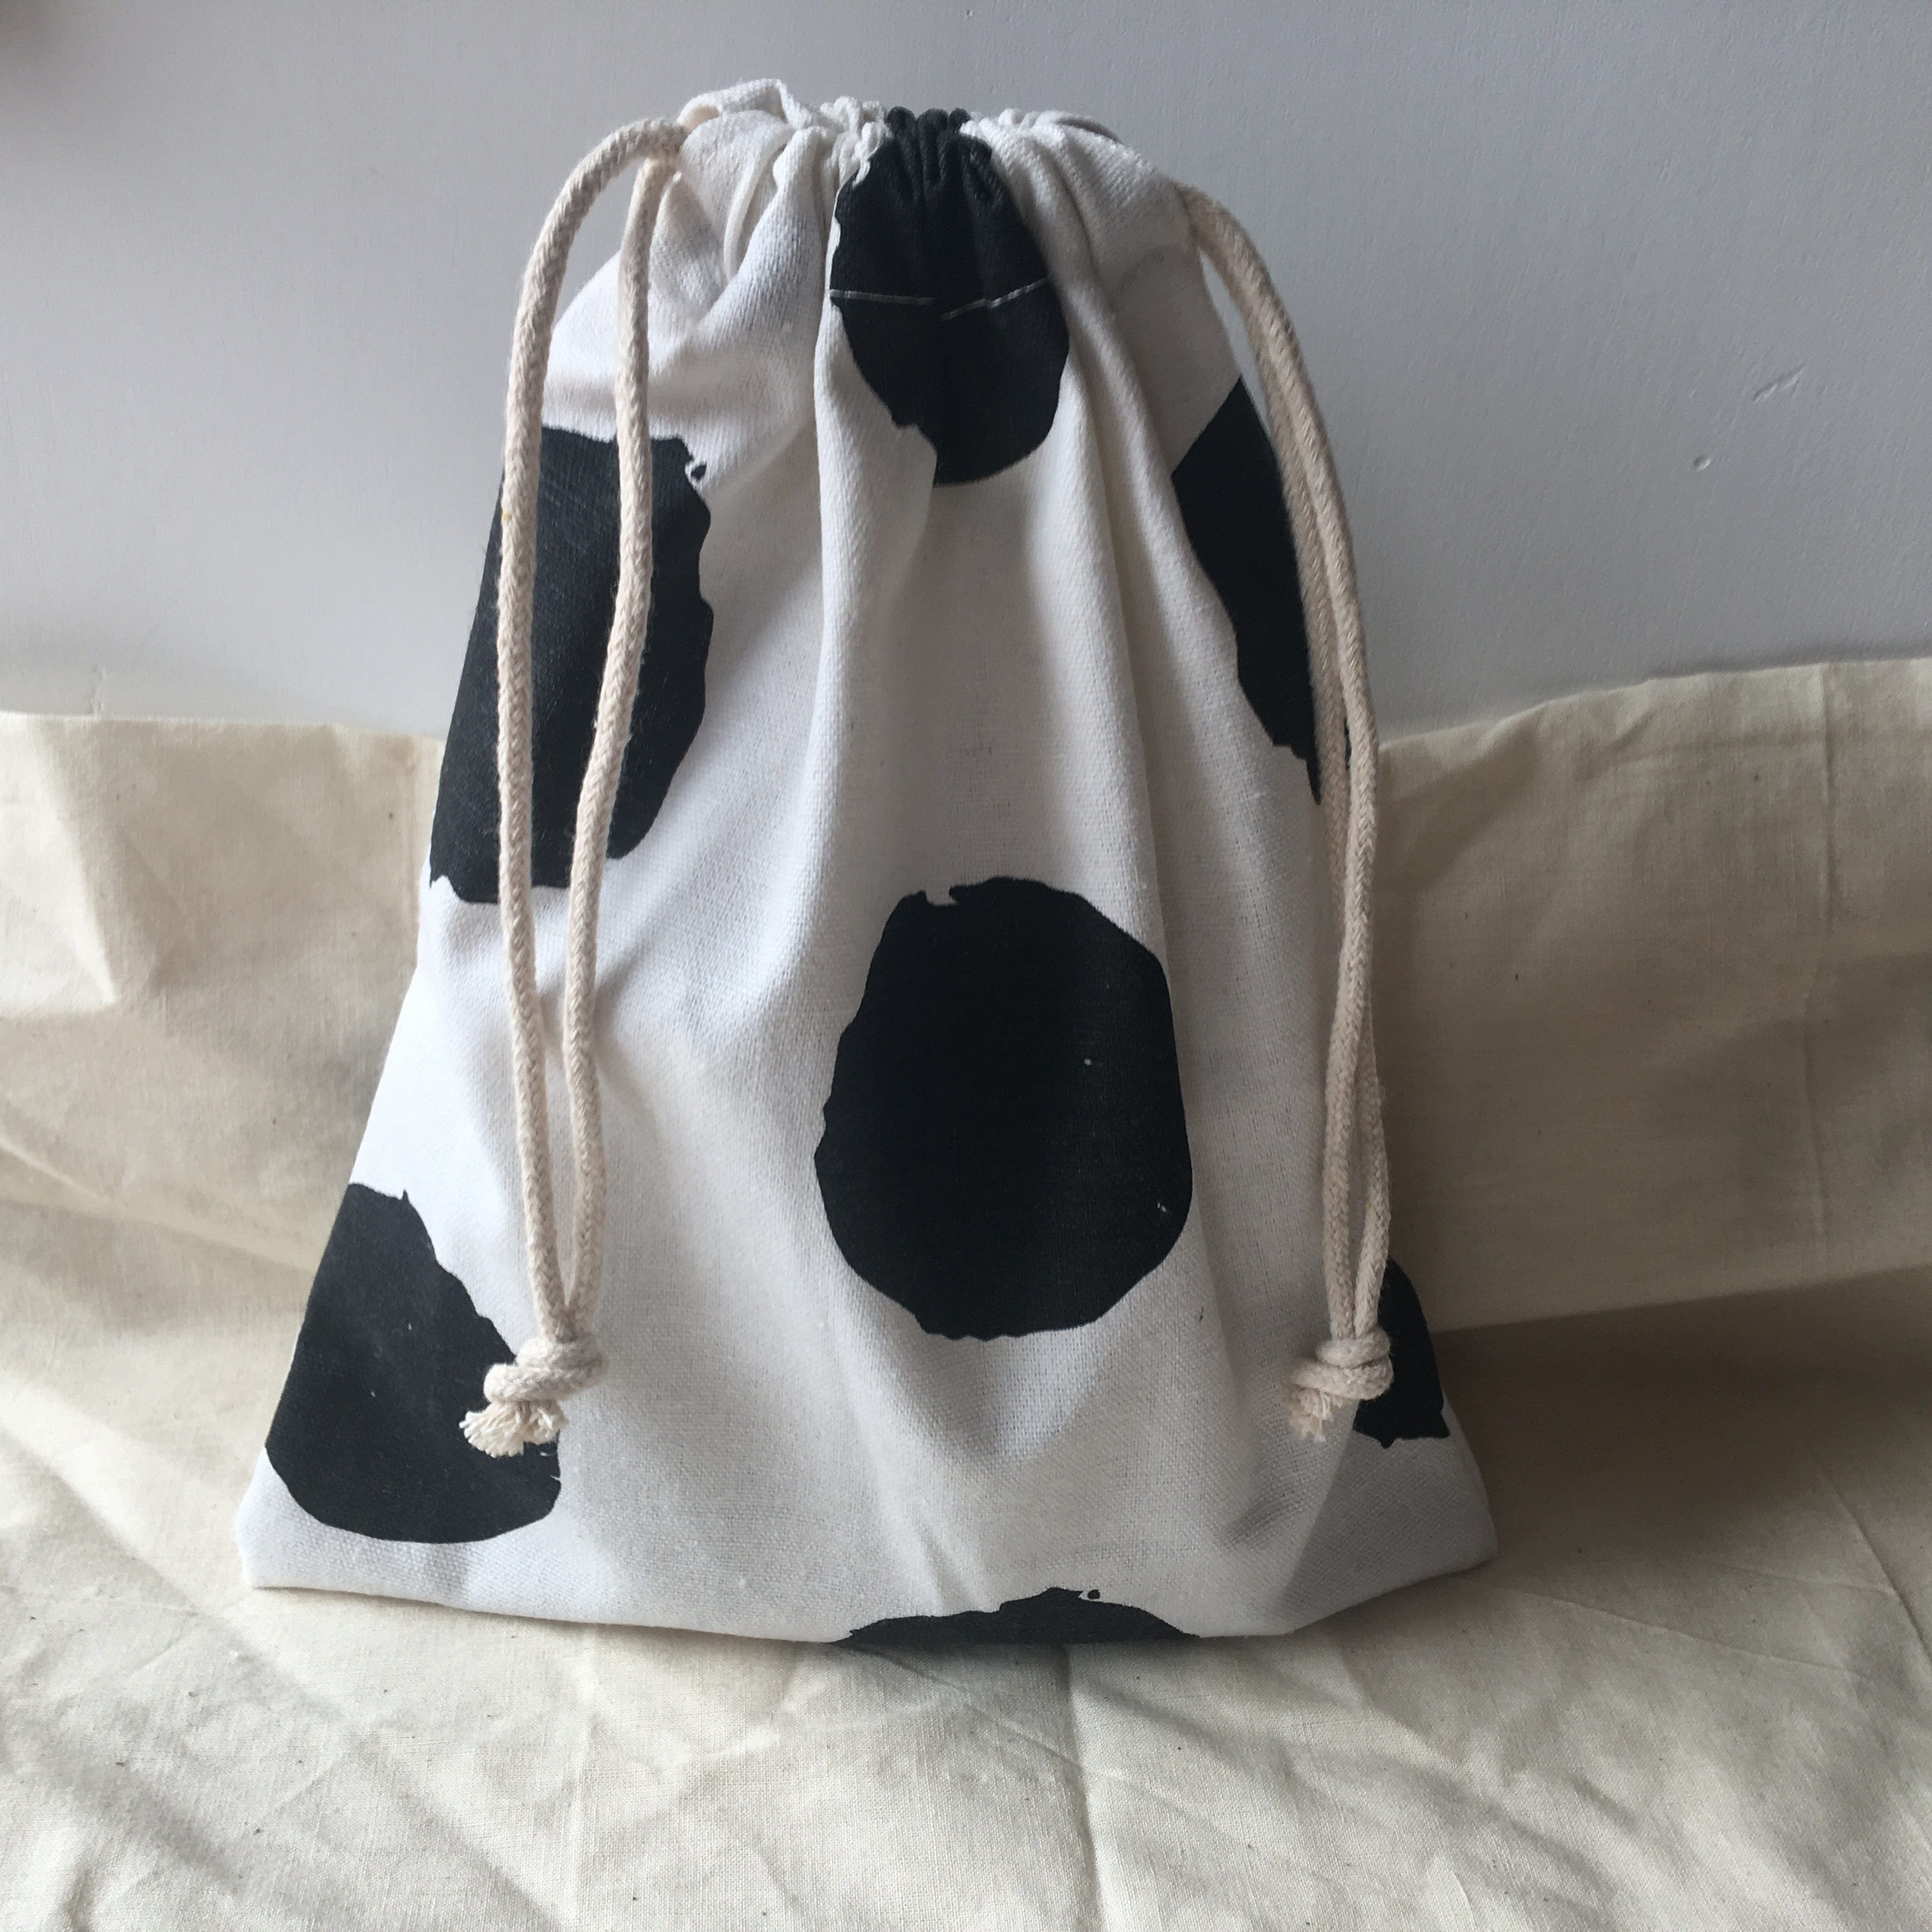 Cotton Linen Drawstring Organised Pouch Party Gift Bag Print Big Black Dots White Base YL610d